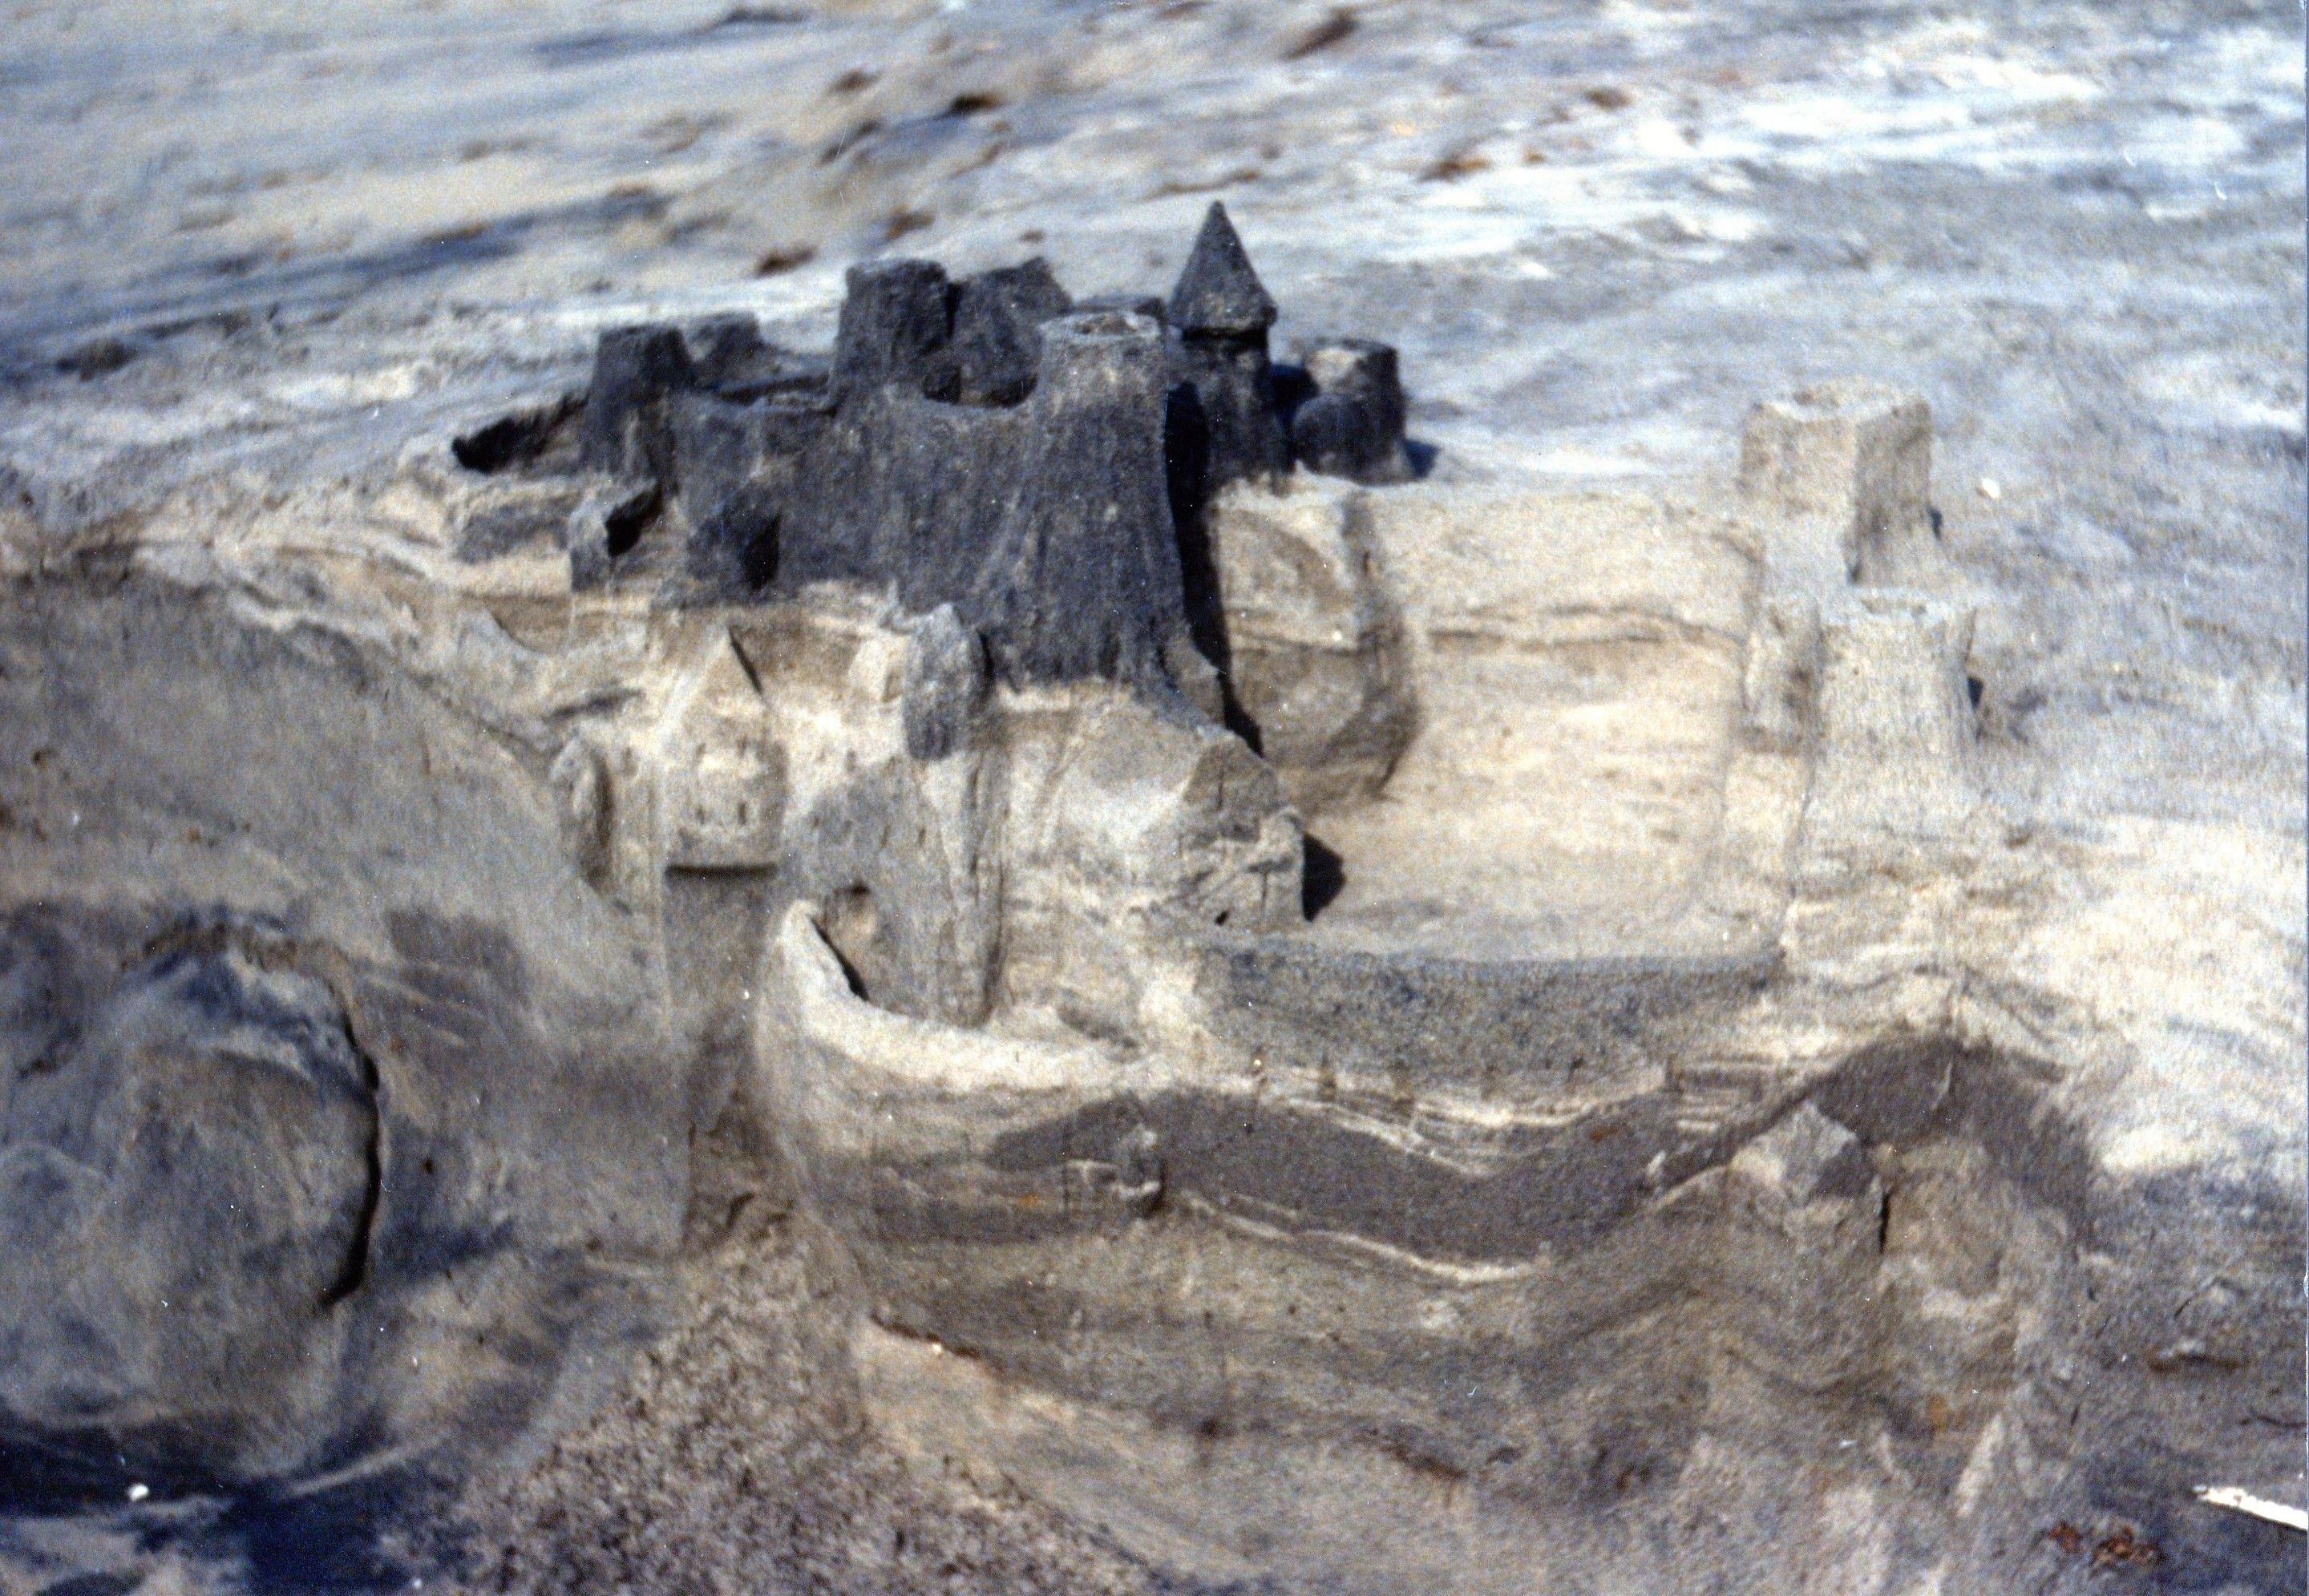 Sand castle.  It's made along a bank of sand.